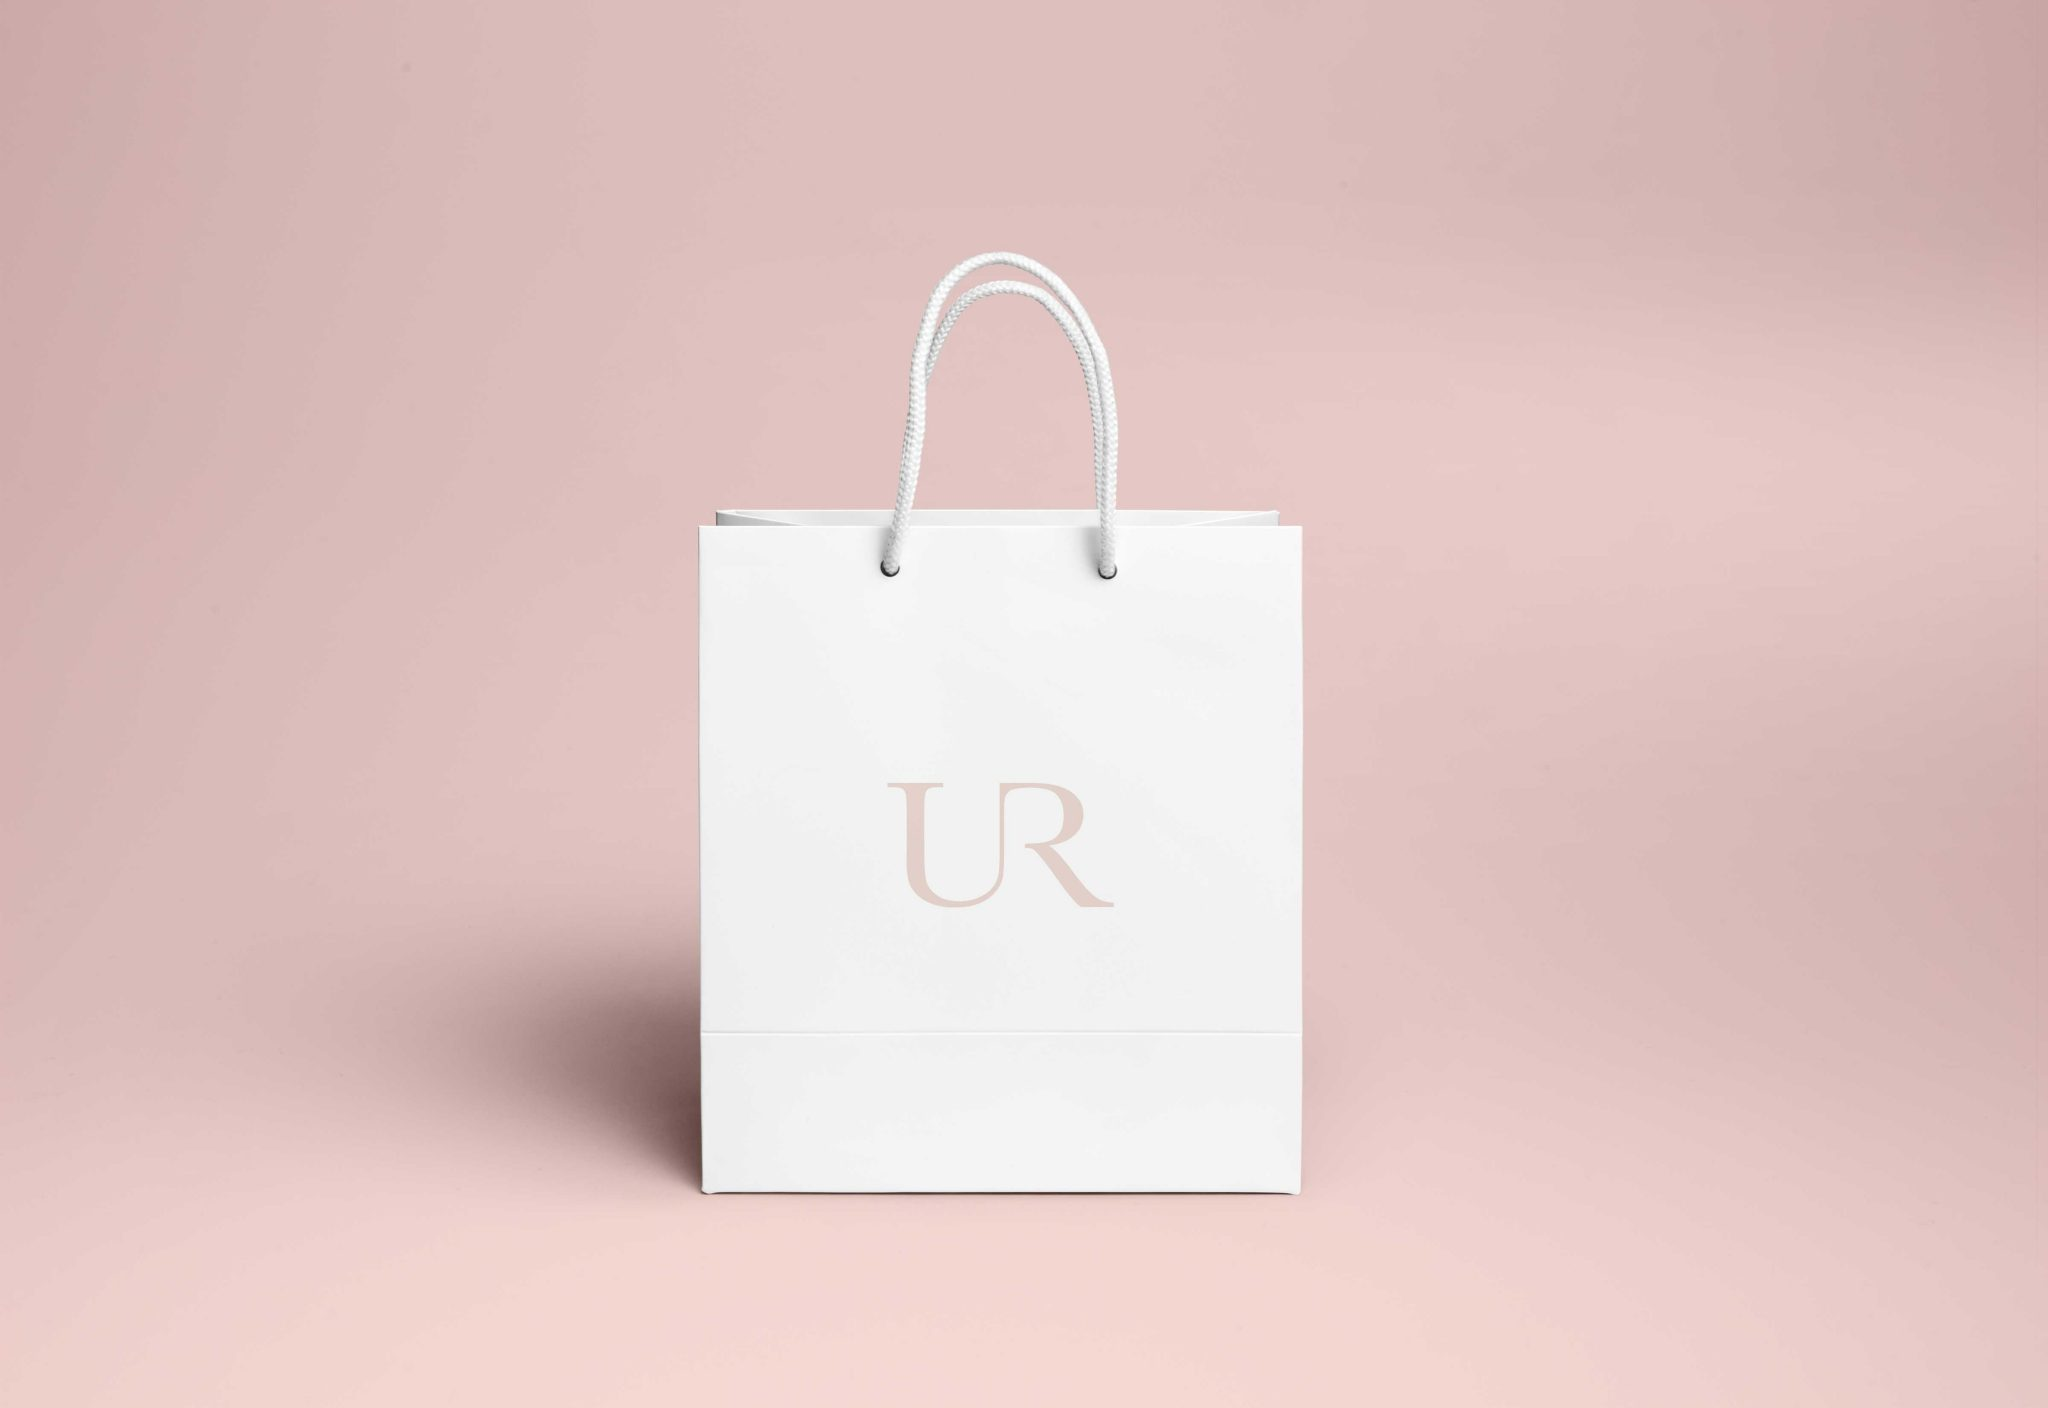 UR-shopper-bag